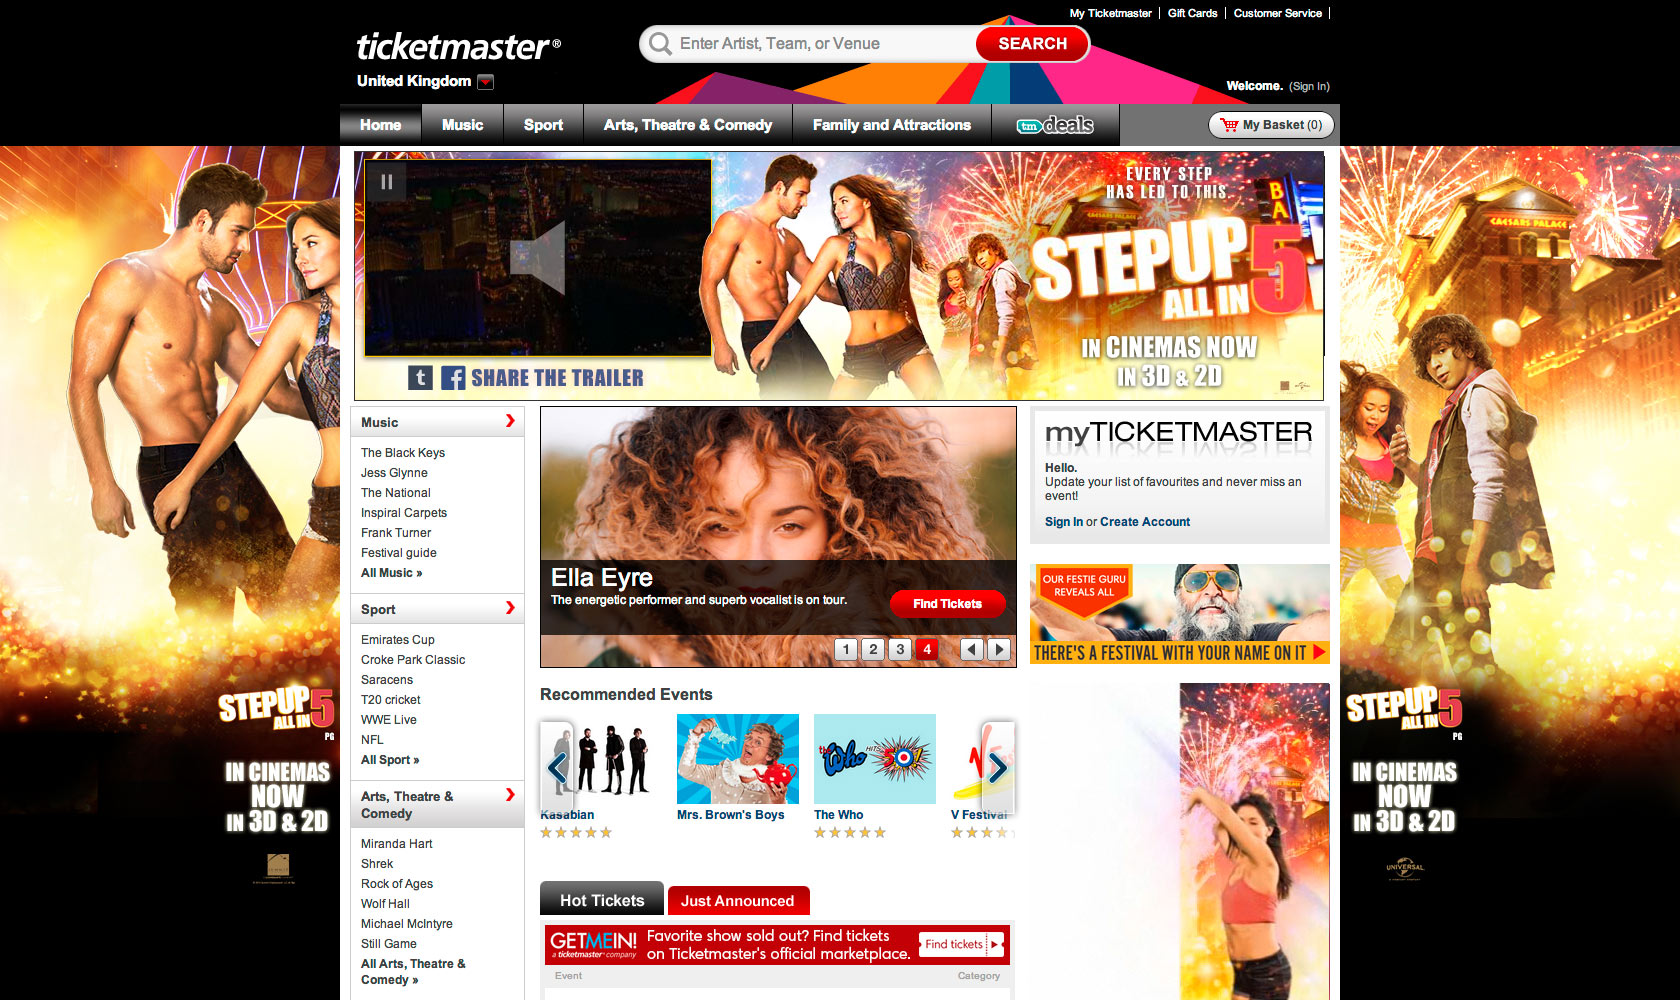 Ticketmaster homepage takeover